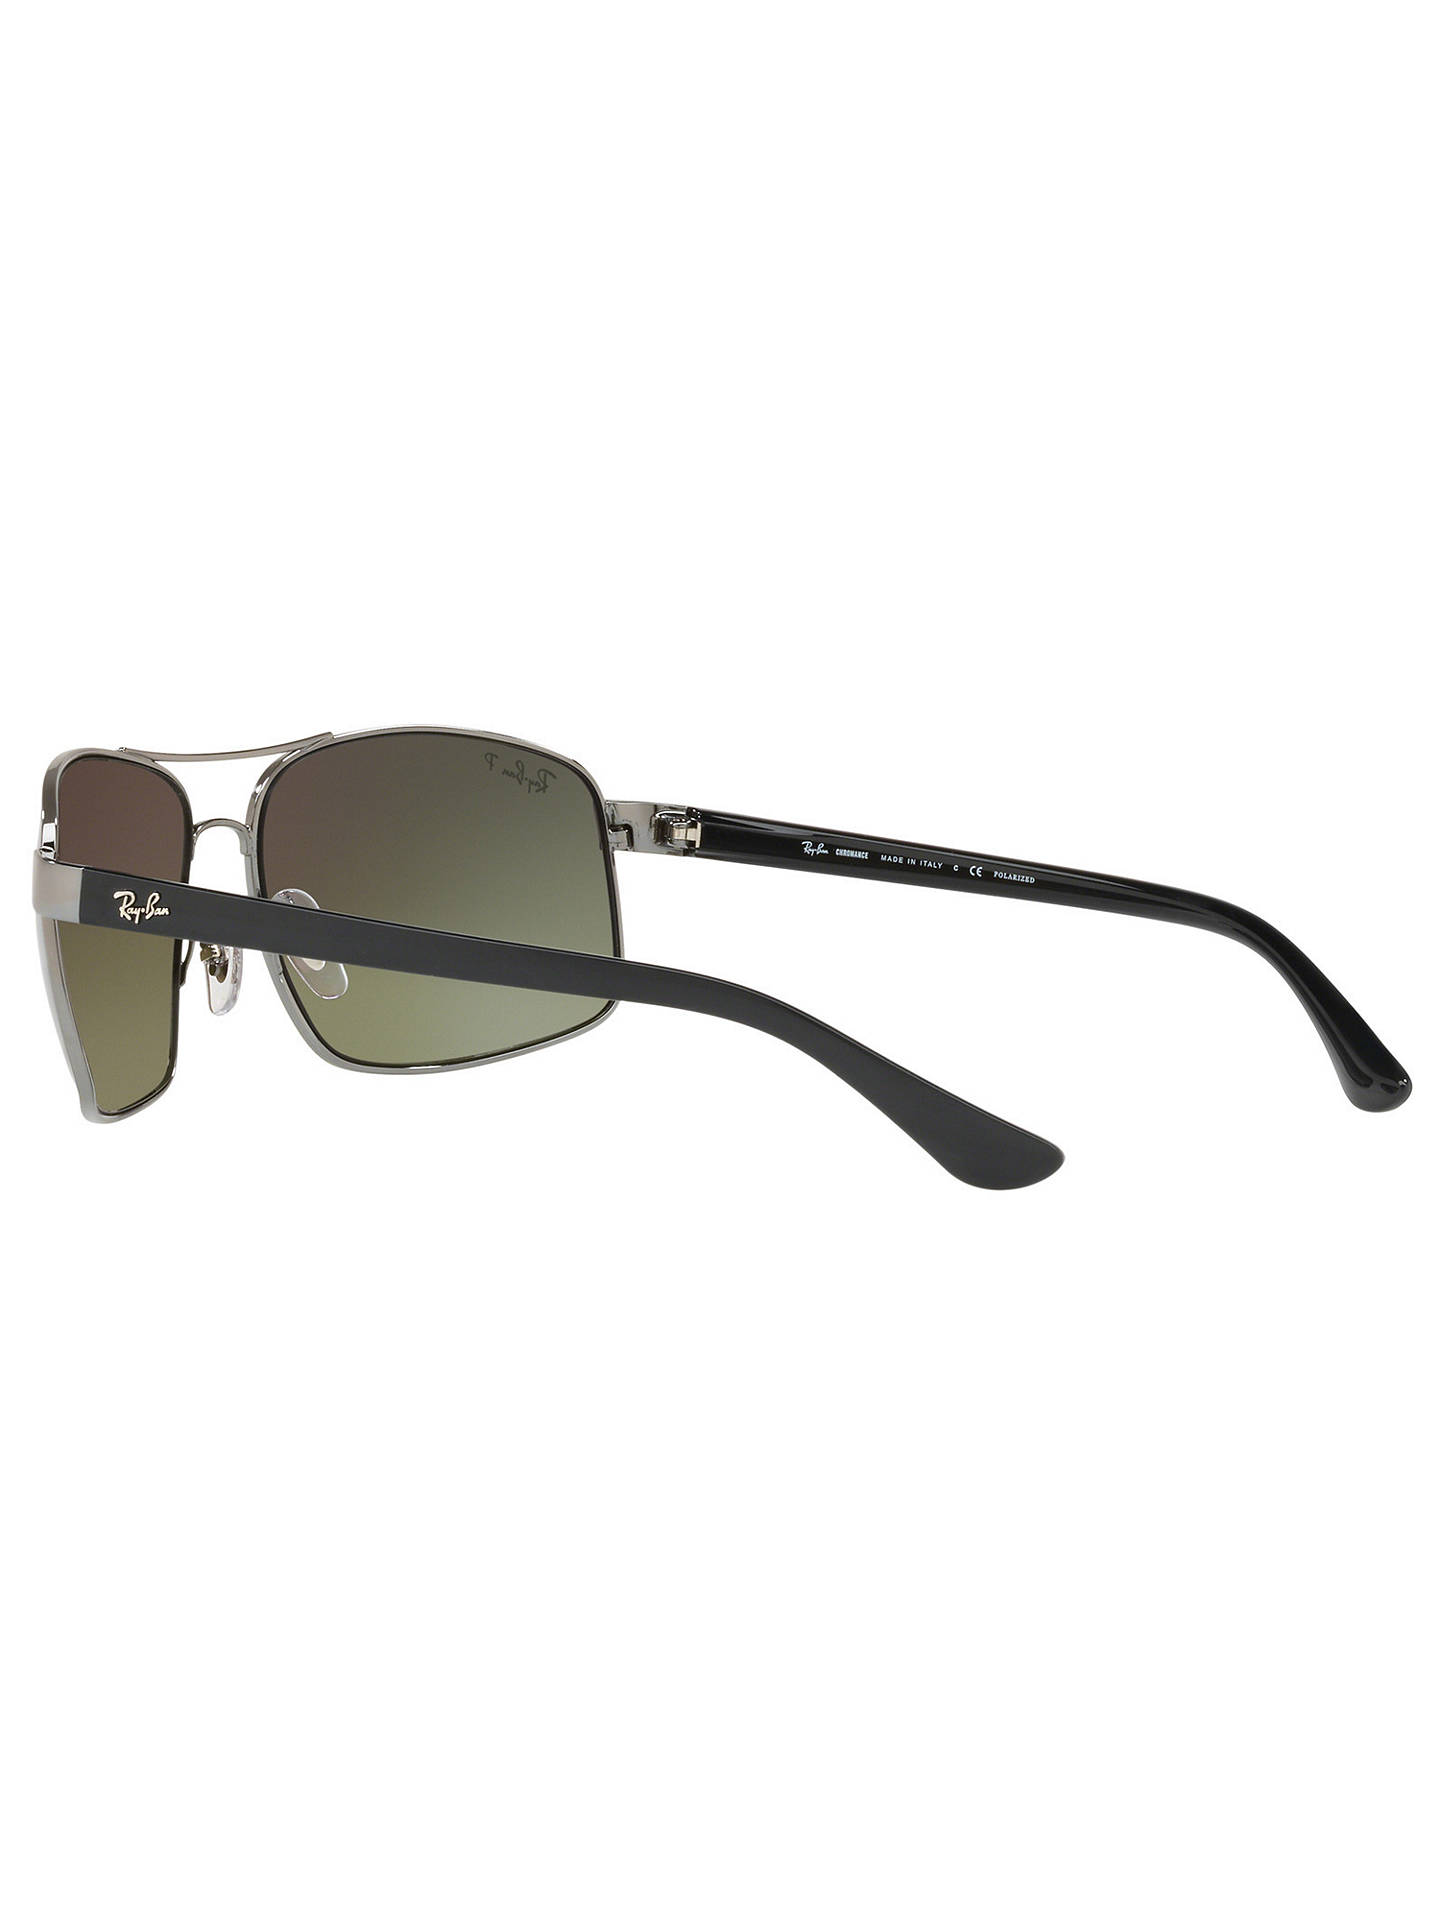 BuyRay-Ban RB3604 Men's Square Sunglasses, Grey Online at johnlewis.com